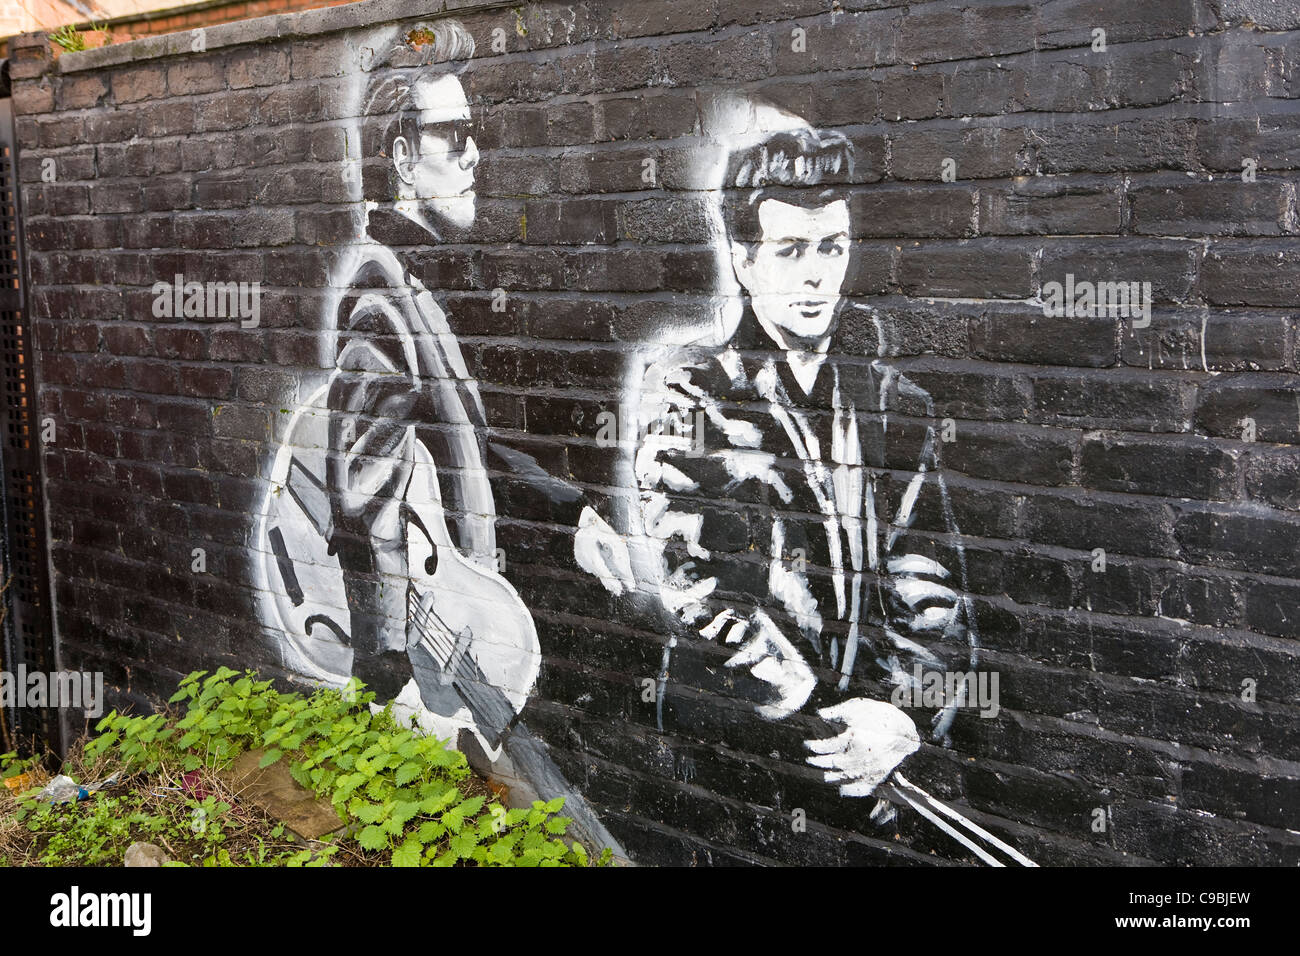 The Liverpool Mural Project_ The Riverside Group_Wall Paintings of the  Beatles, Seaforth, Merseyside, UK - Stock Image